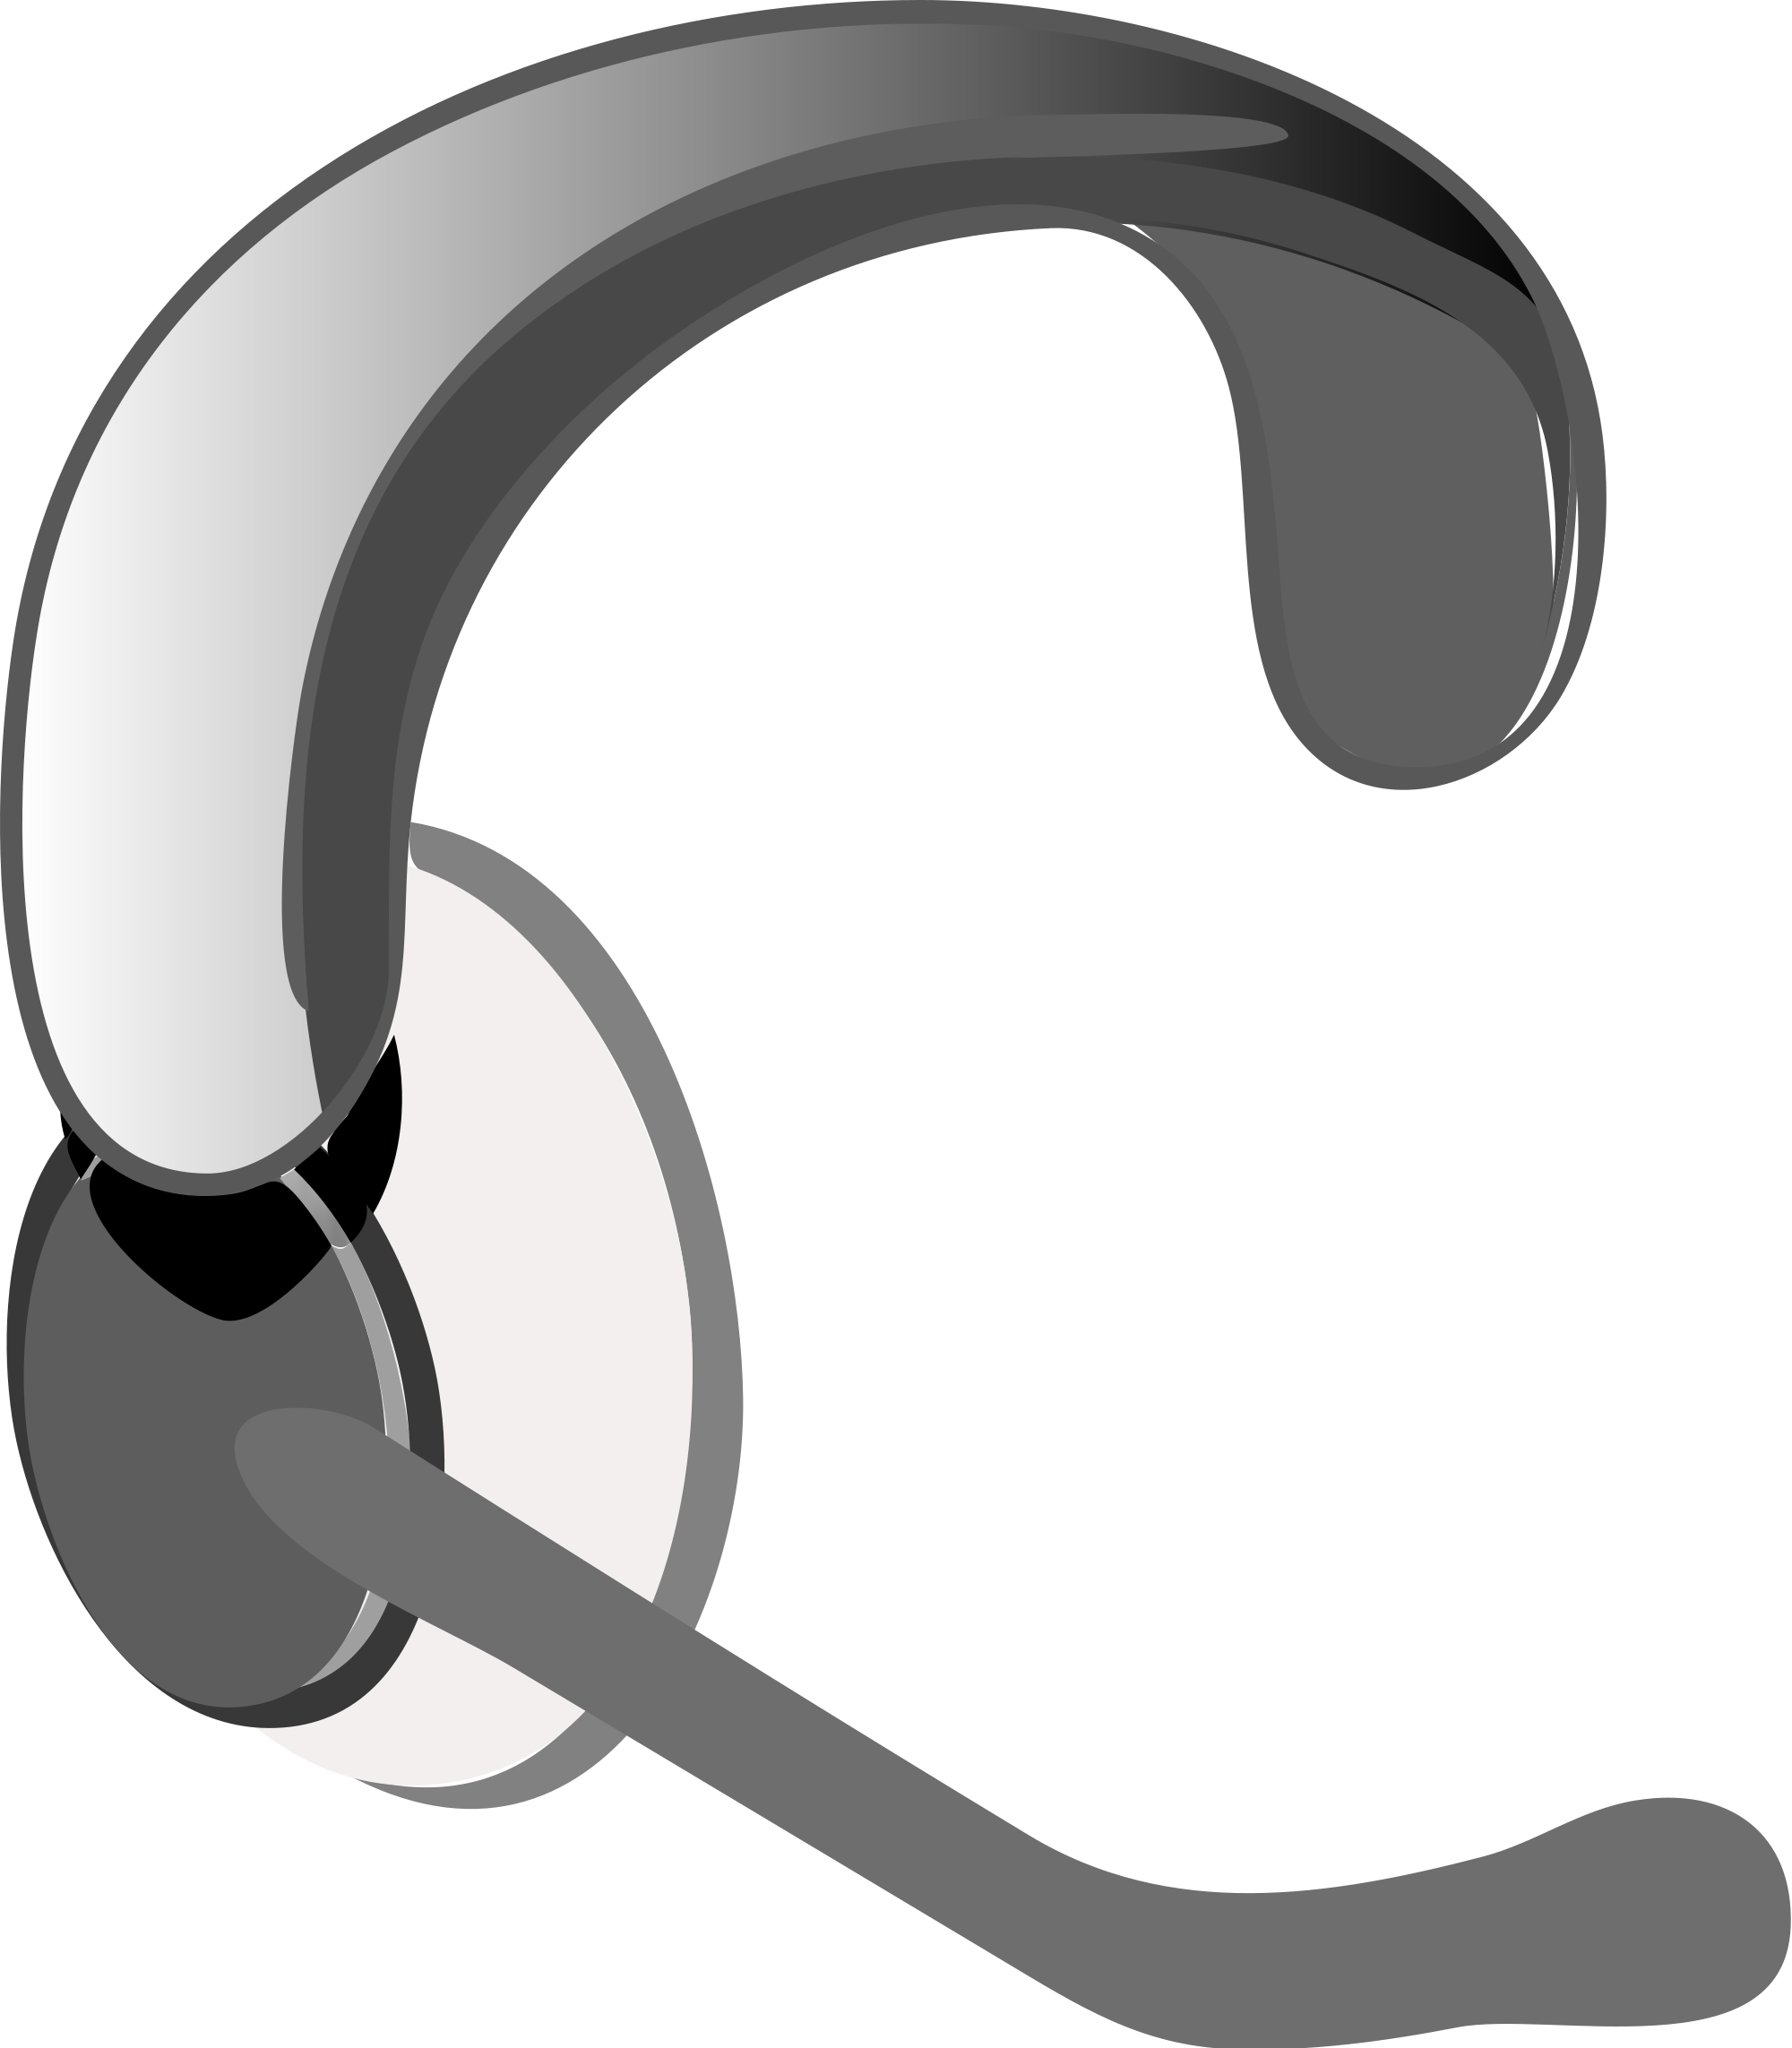 Headphones clipart file. Headset icon svg wikimedia